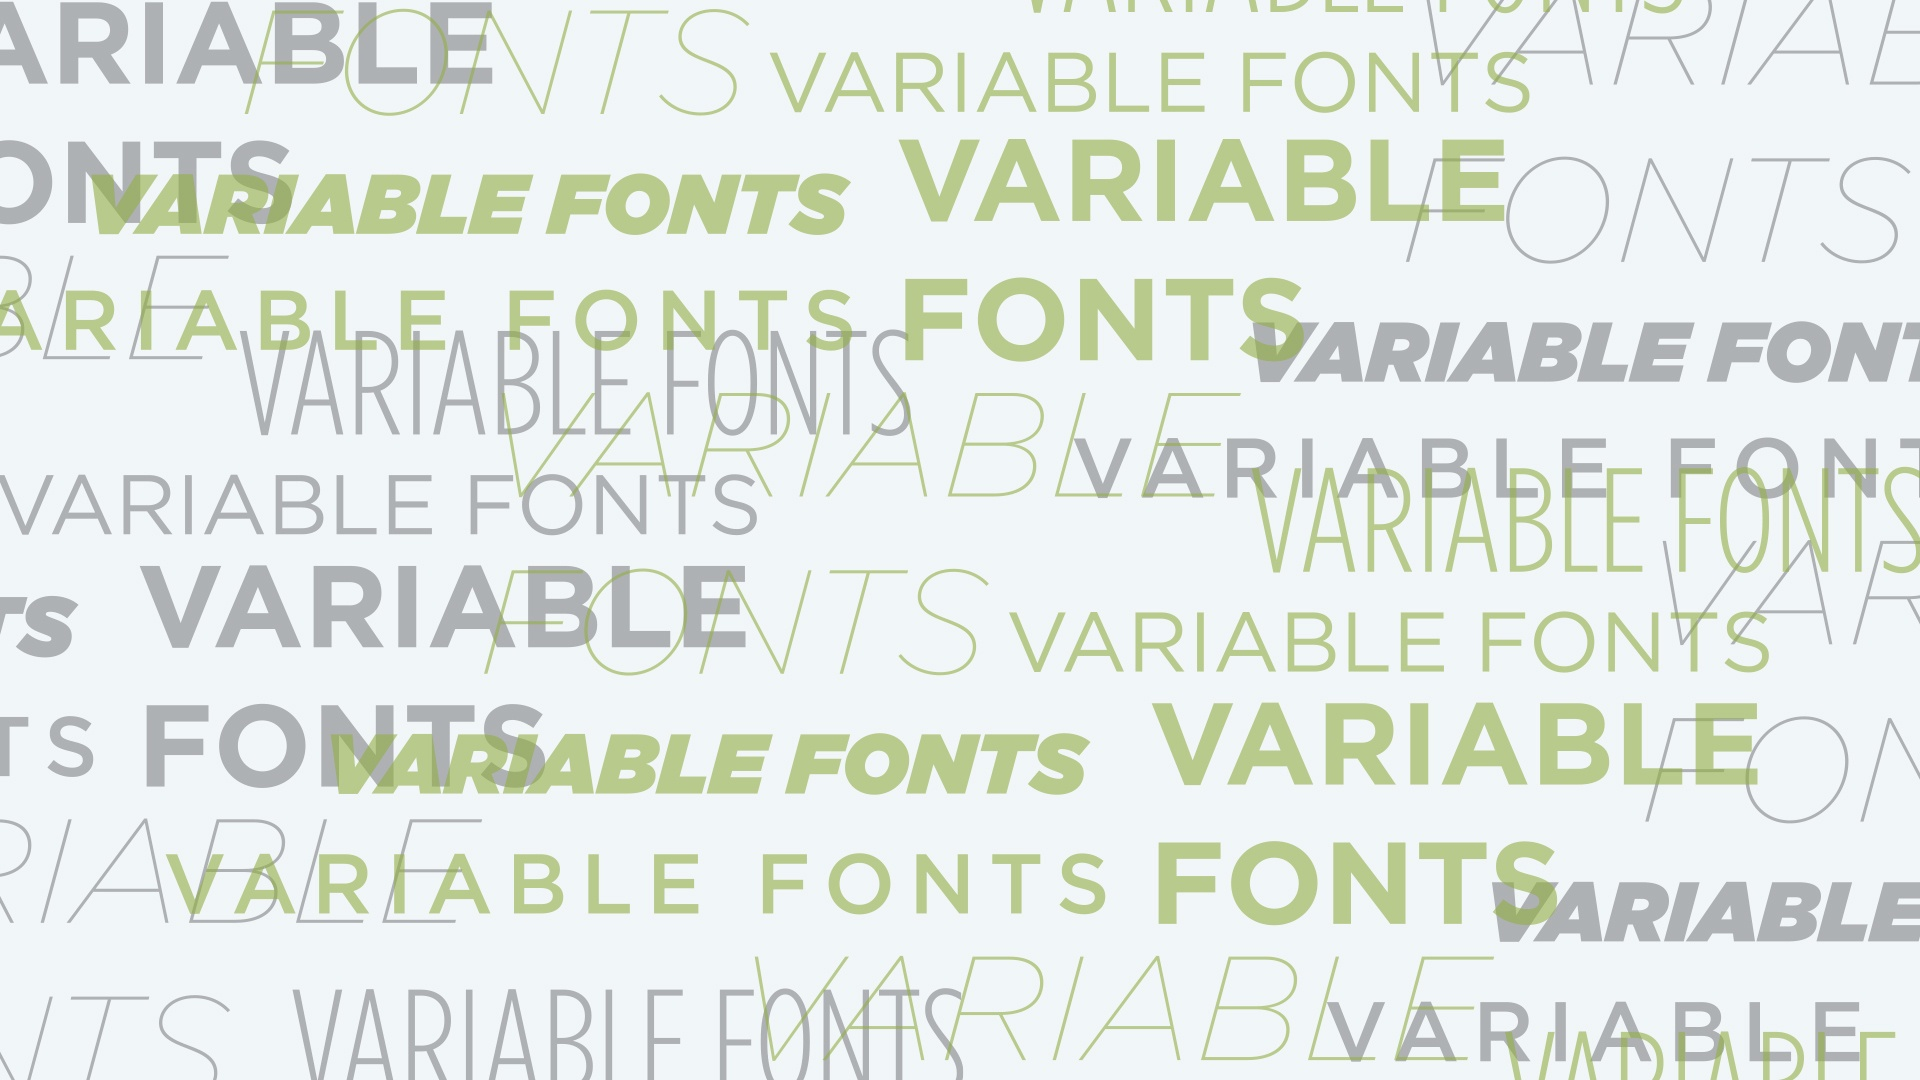 Variable Fonts: Responsive Type for Responsive Web - Lyquix